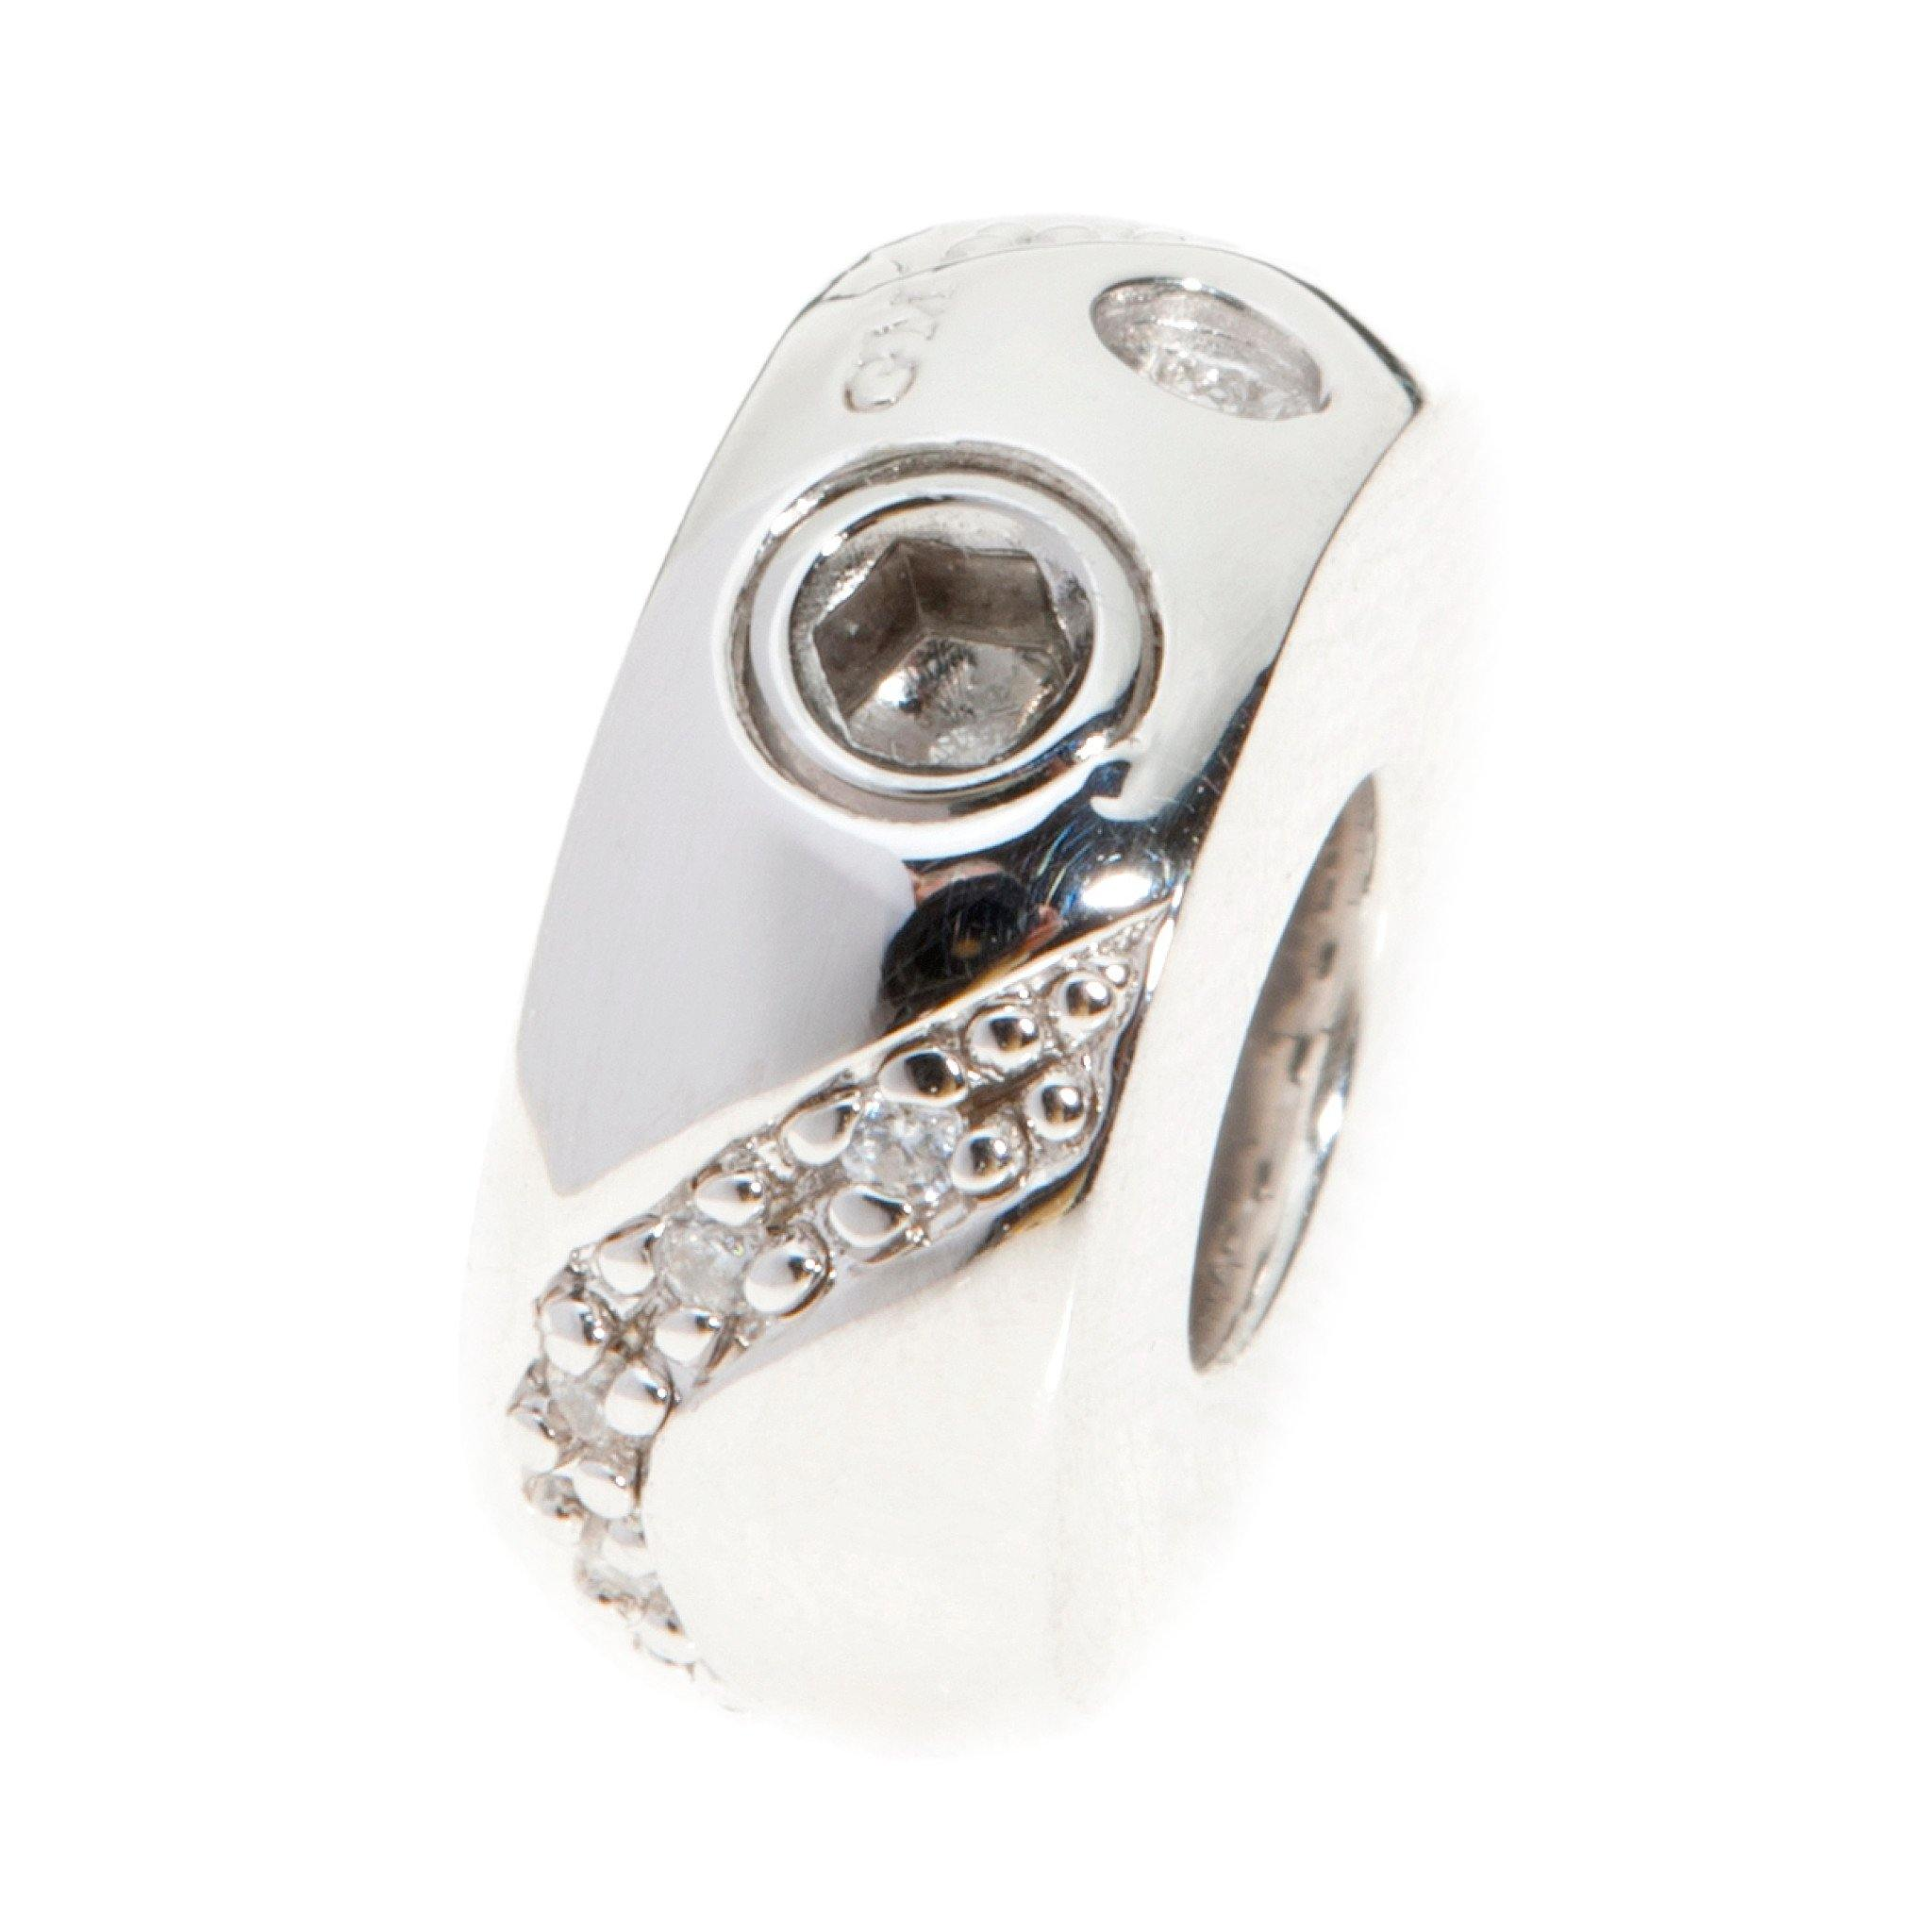 Belgravia Design 27 Cremation Ashes Bead 925 Silver - Urns UK